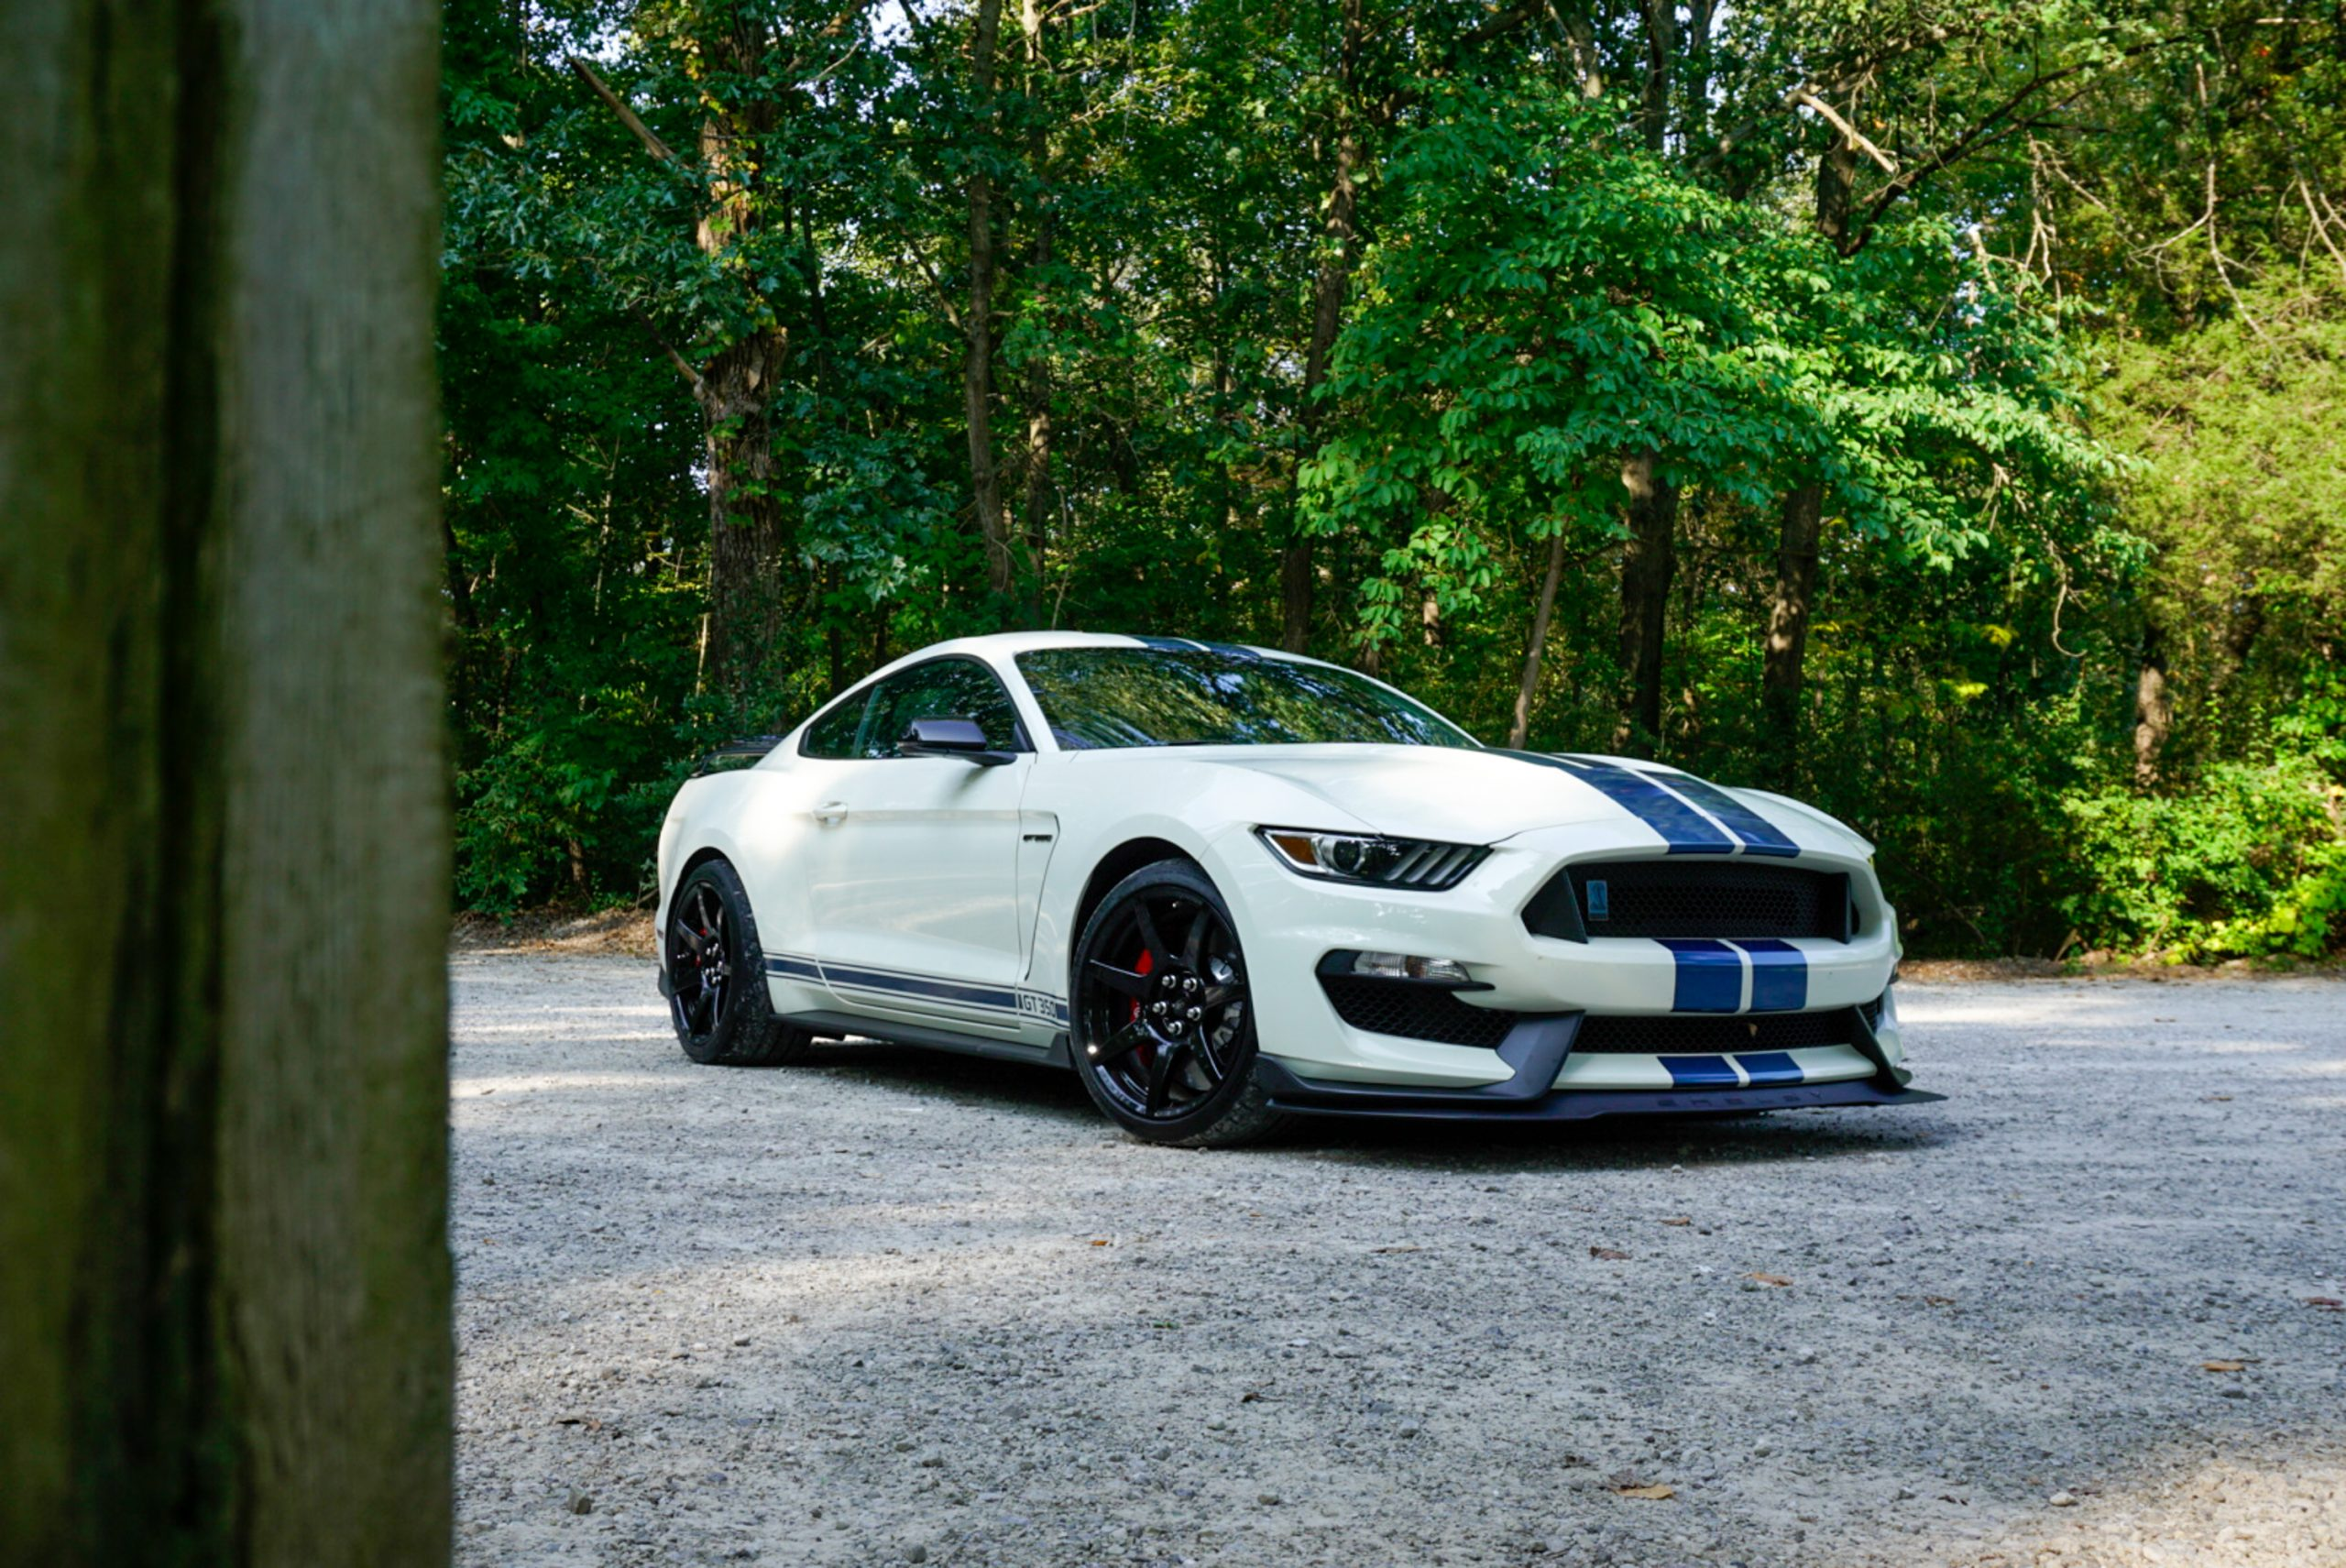 2020-Shelby-GT350R-Heritage-Edition-EW2-8-front three quarter